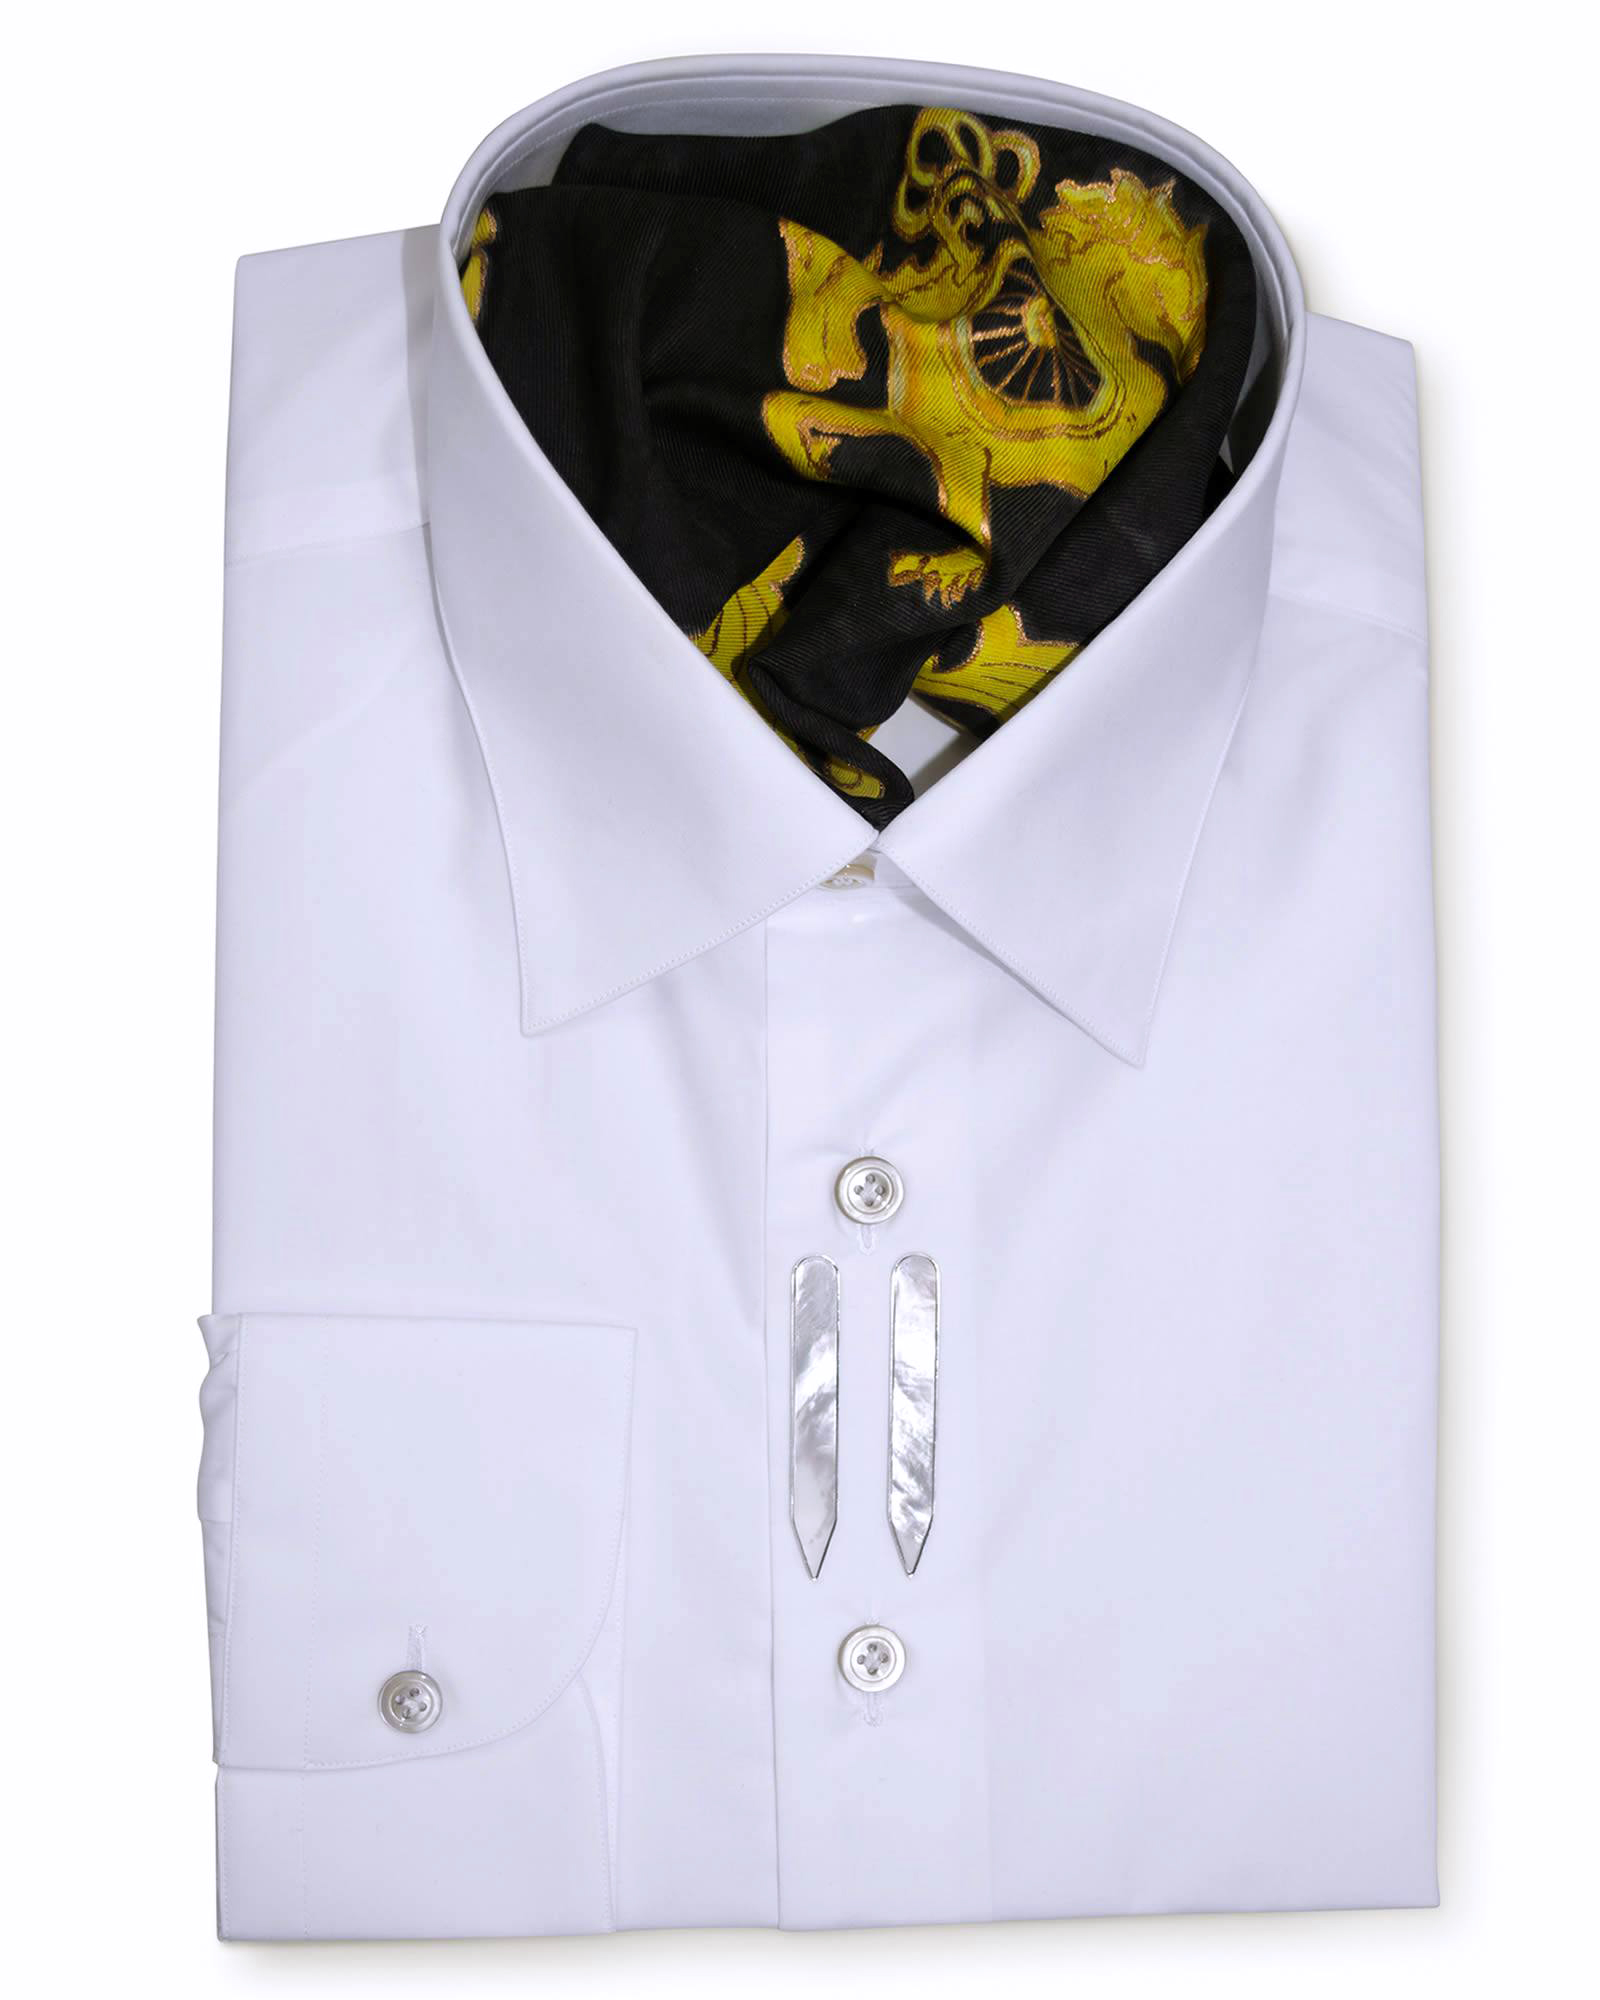 Classic Style Regular Fit White Dress Shirts